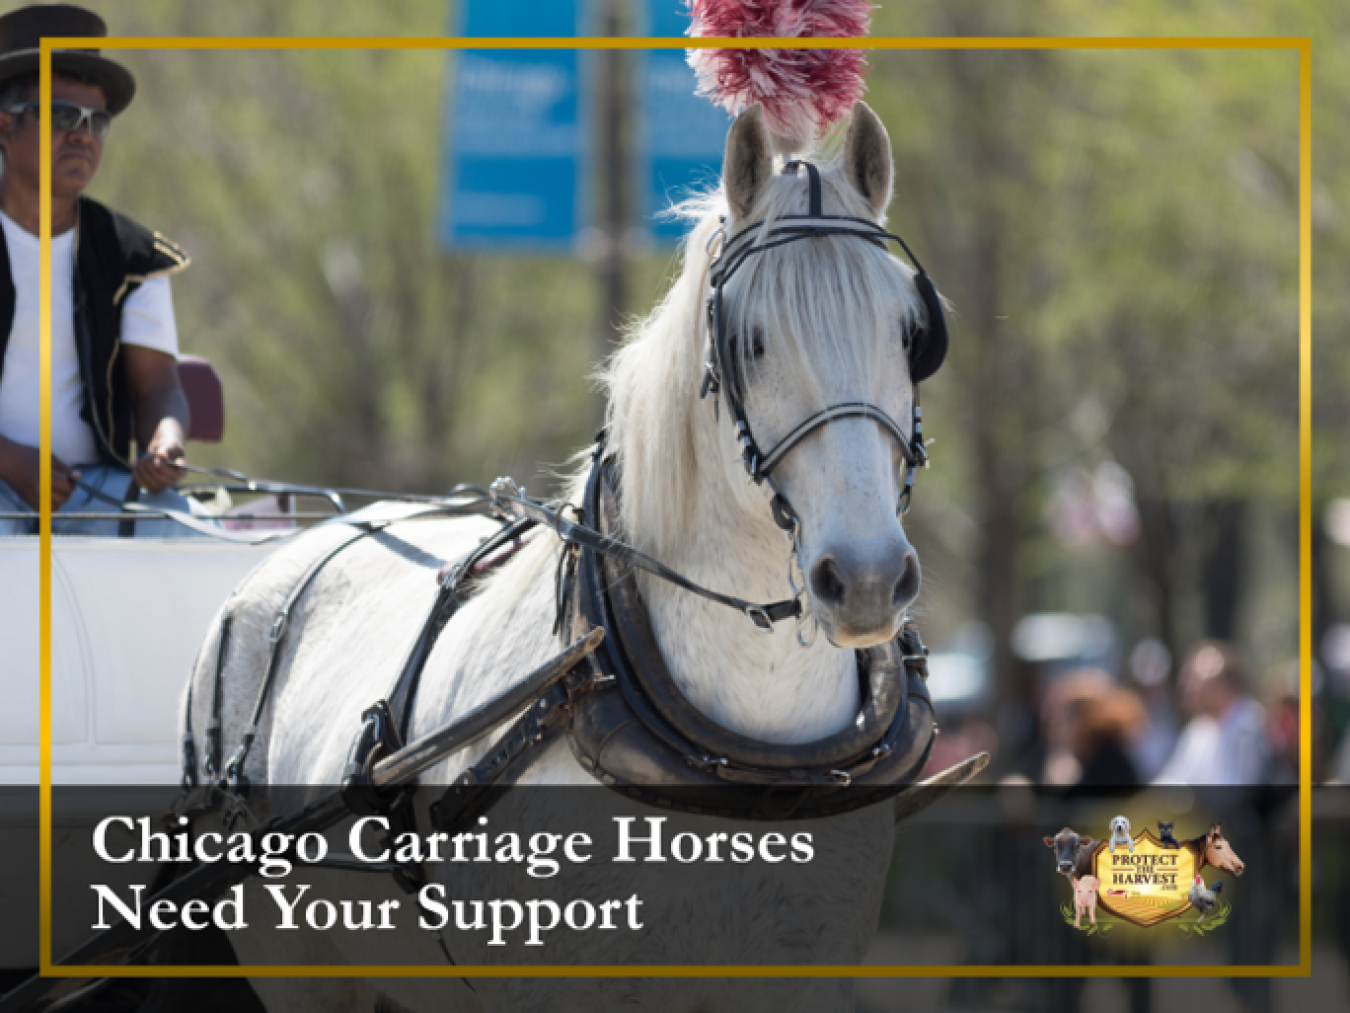 Save Chicago Carriage Horses